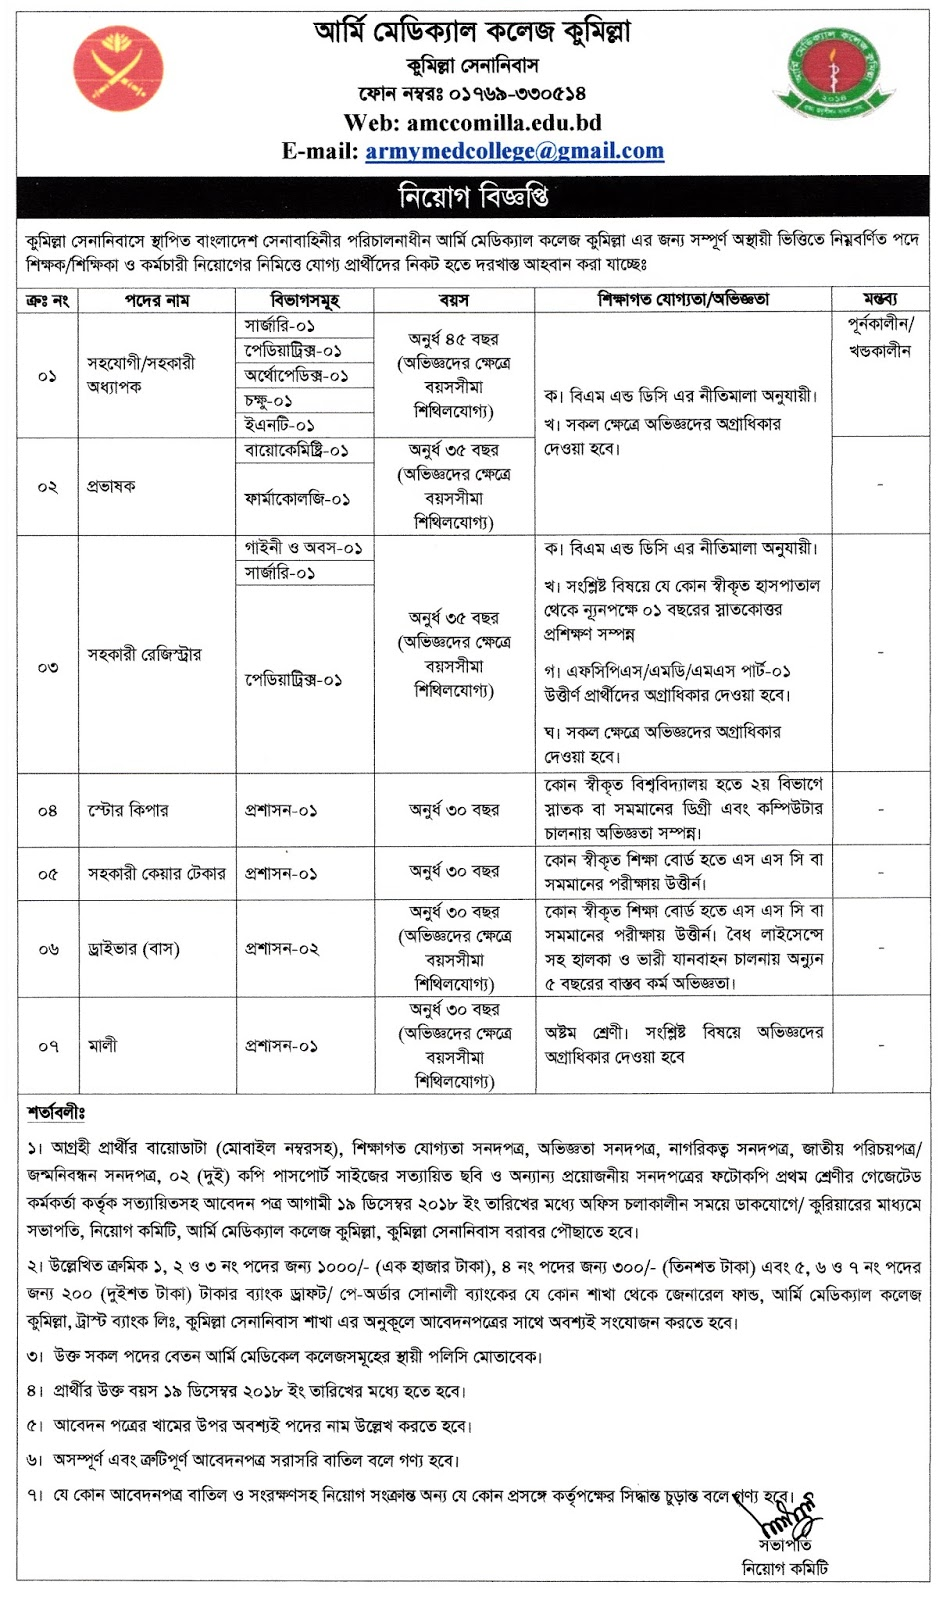 Army Medical College Comilla Job Circular 2018